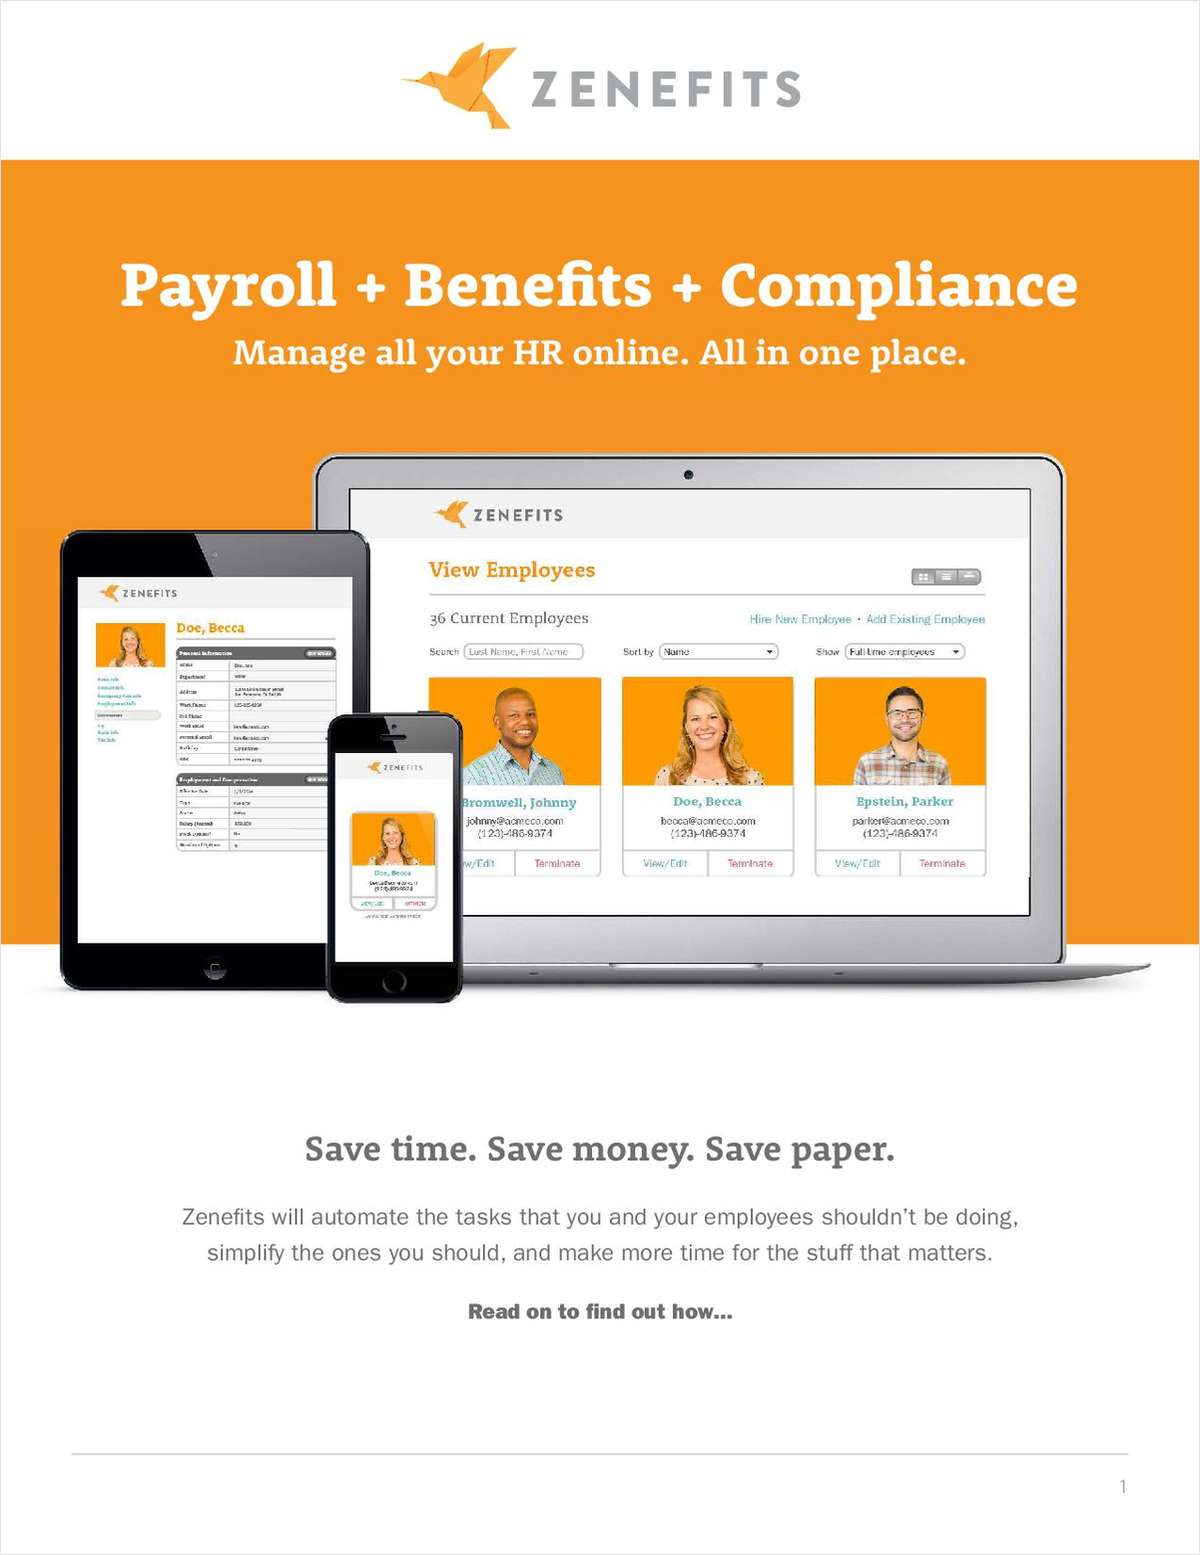 Do you want to manage employee health plans, payroll, PTO, 401k, and benefits, all in one place, without changing your current plans or systems?